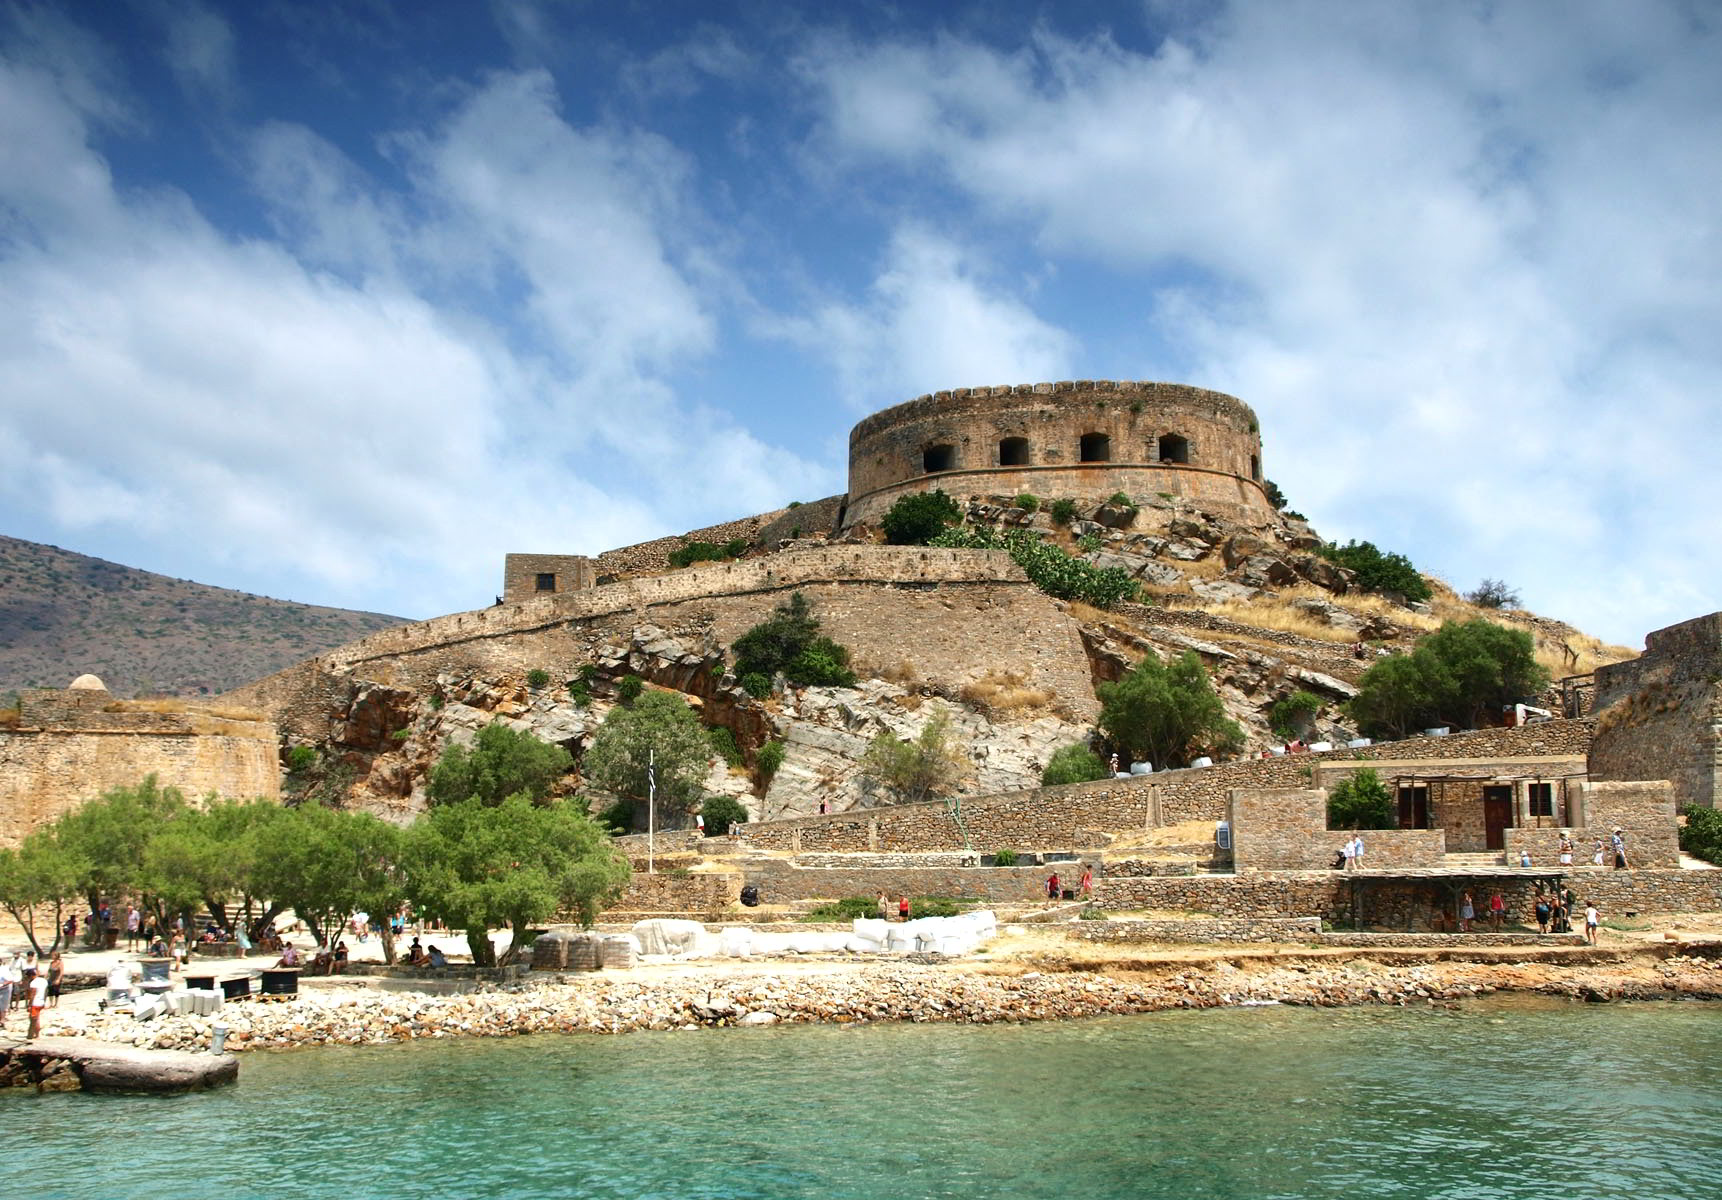 The Venetian fortress on the island of Spinalonga, part of the ASIT Crete tours packages